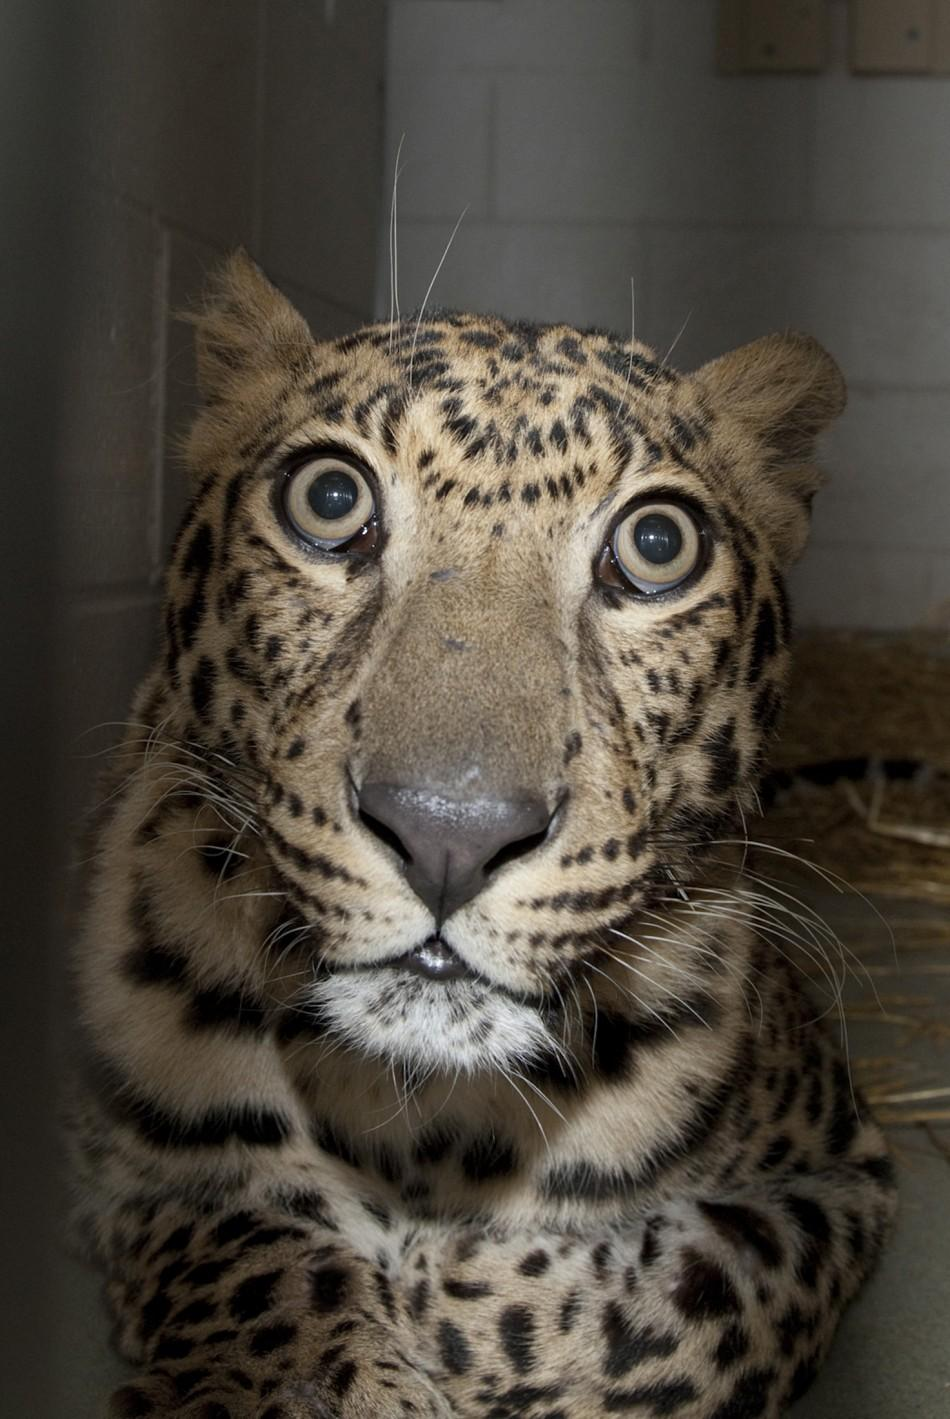 A rescued leopard is pictured at the Columbus Zoo and Aquarium